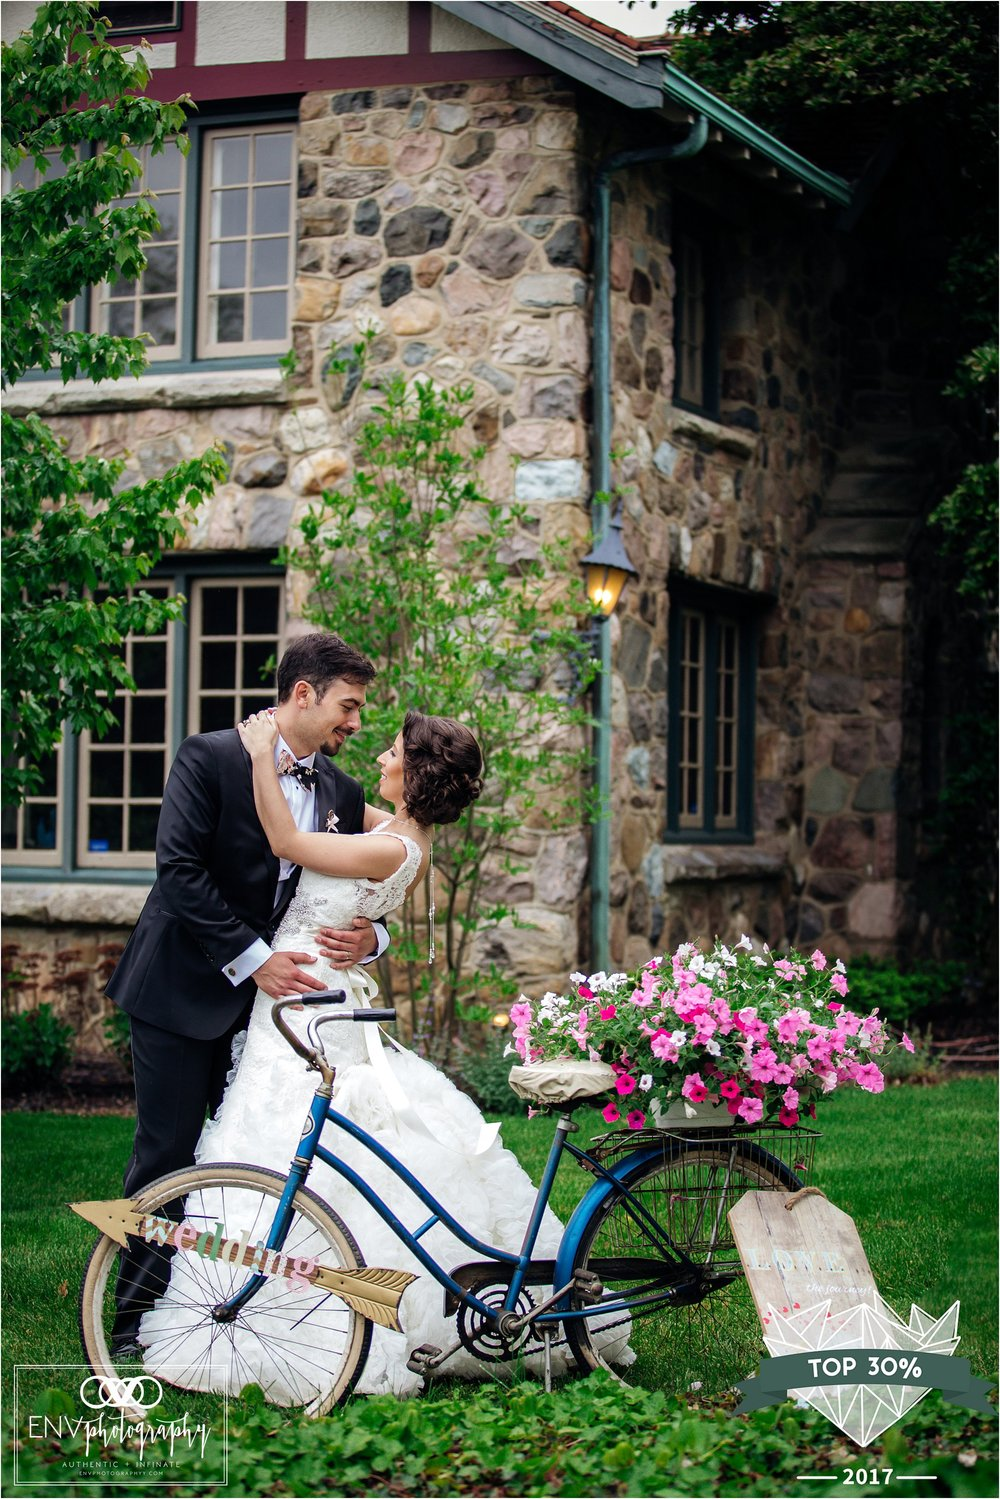 Beverly Mansion Wedding in Marengo, Ohio